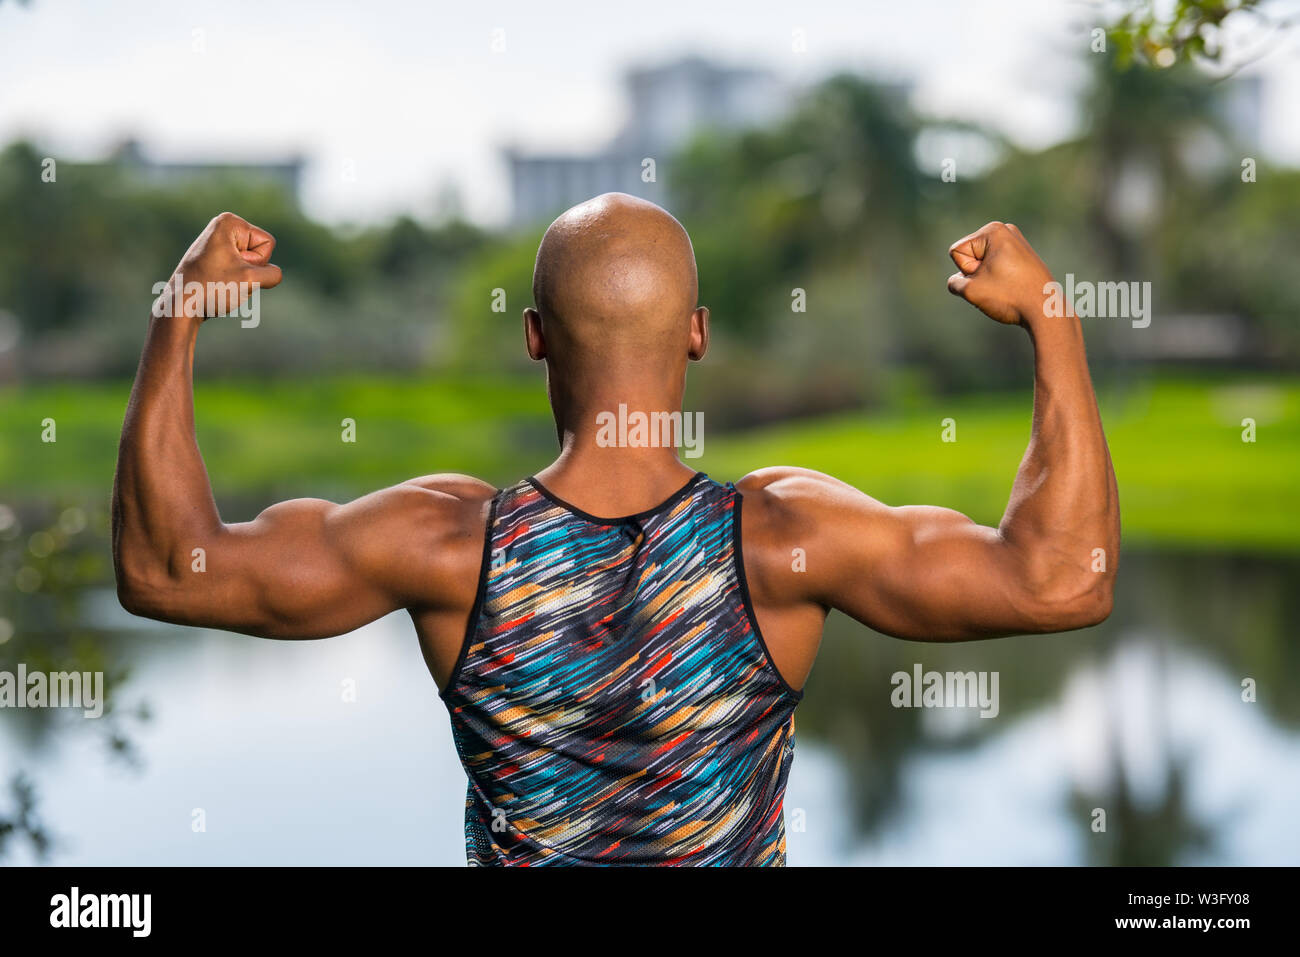 Rear view portrait of a strong macho man flexing his arms. Park lake scene in the background - Stock Image